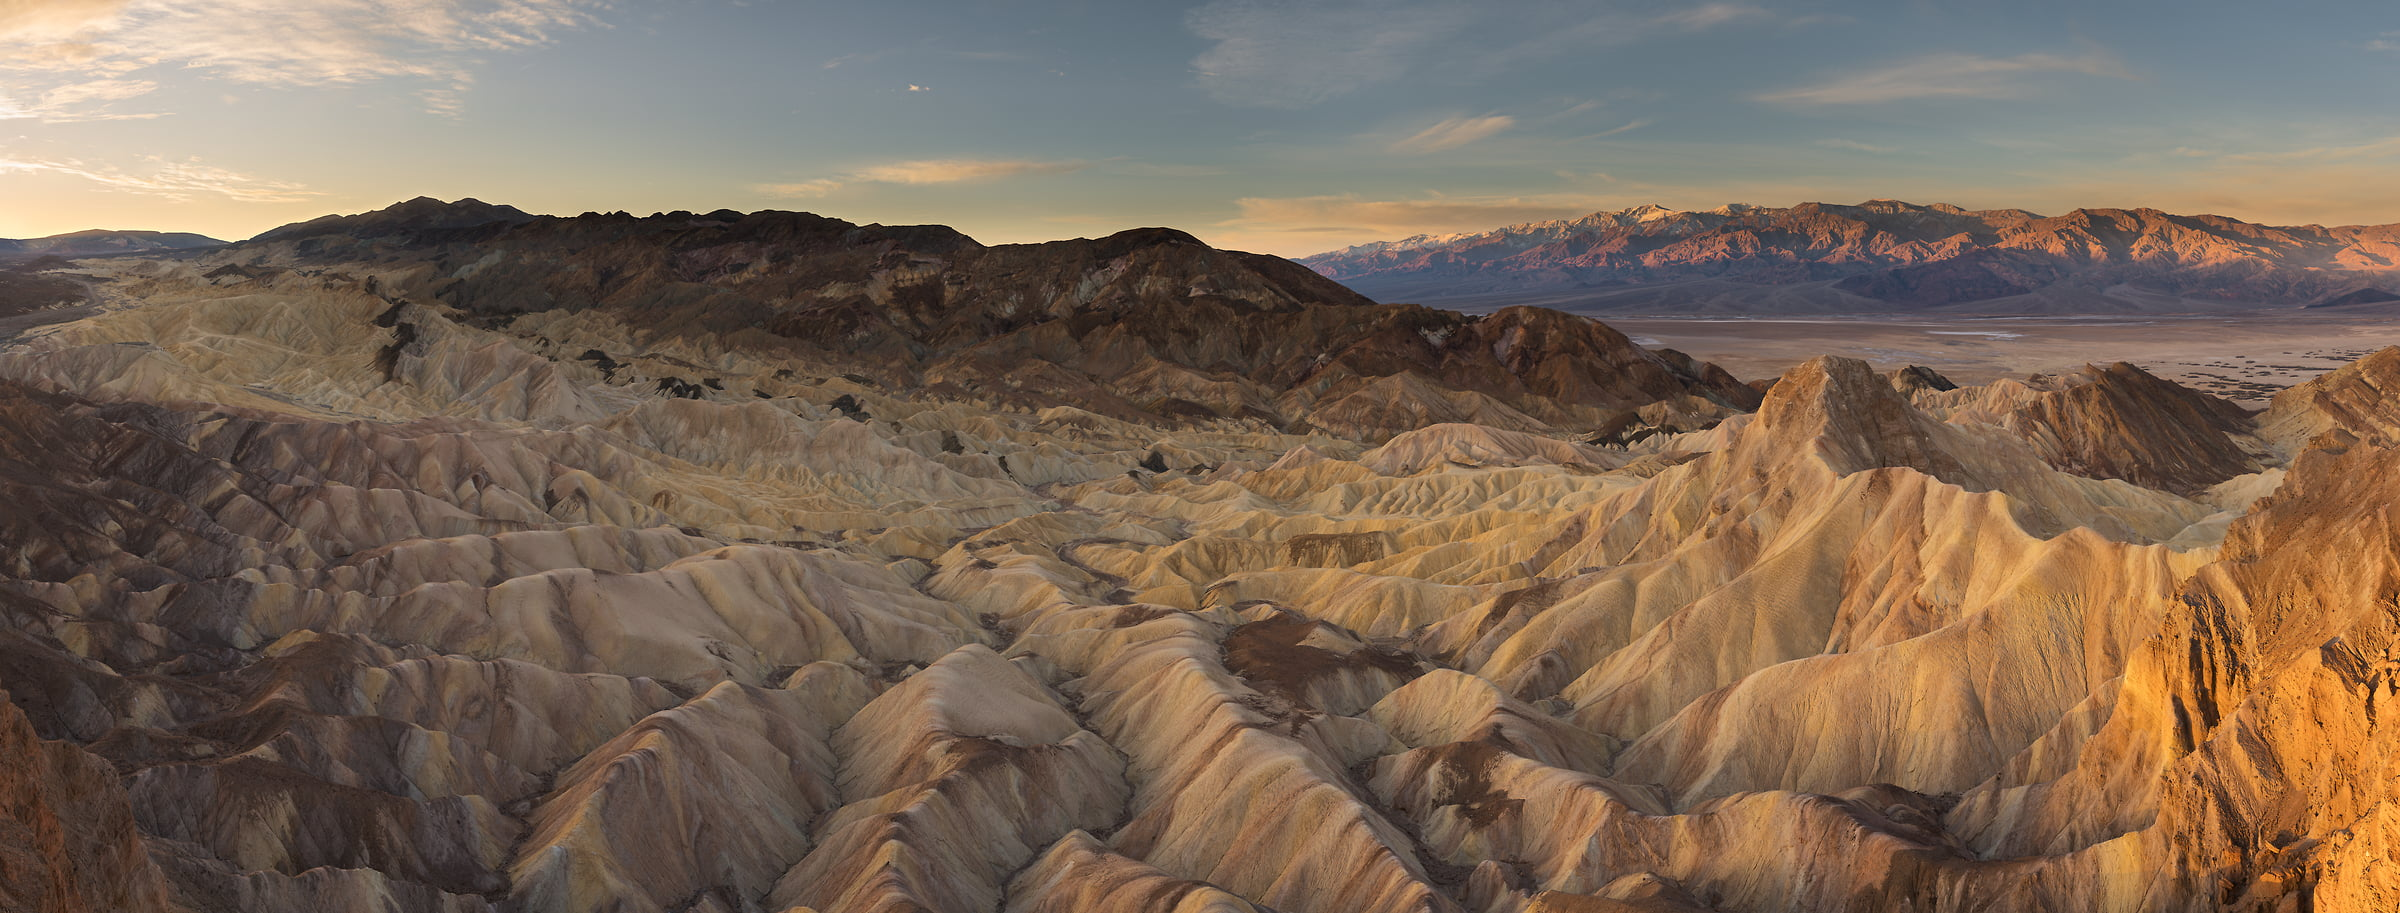 1,245 megapixels! A very high resolution, large-format VAST photo print of Death Valley from Zabriskie Point; fine art landscape photo created by Guido Brandt in Death Valley National Park, California